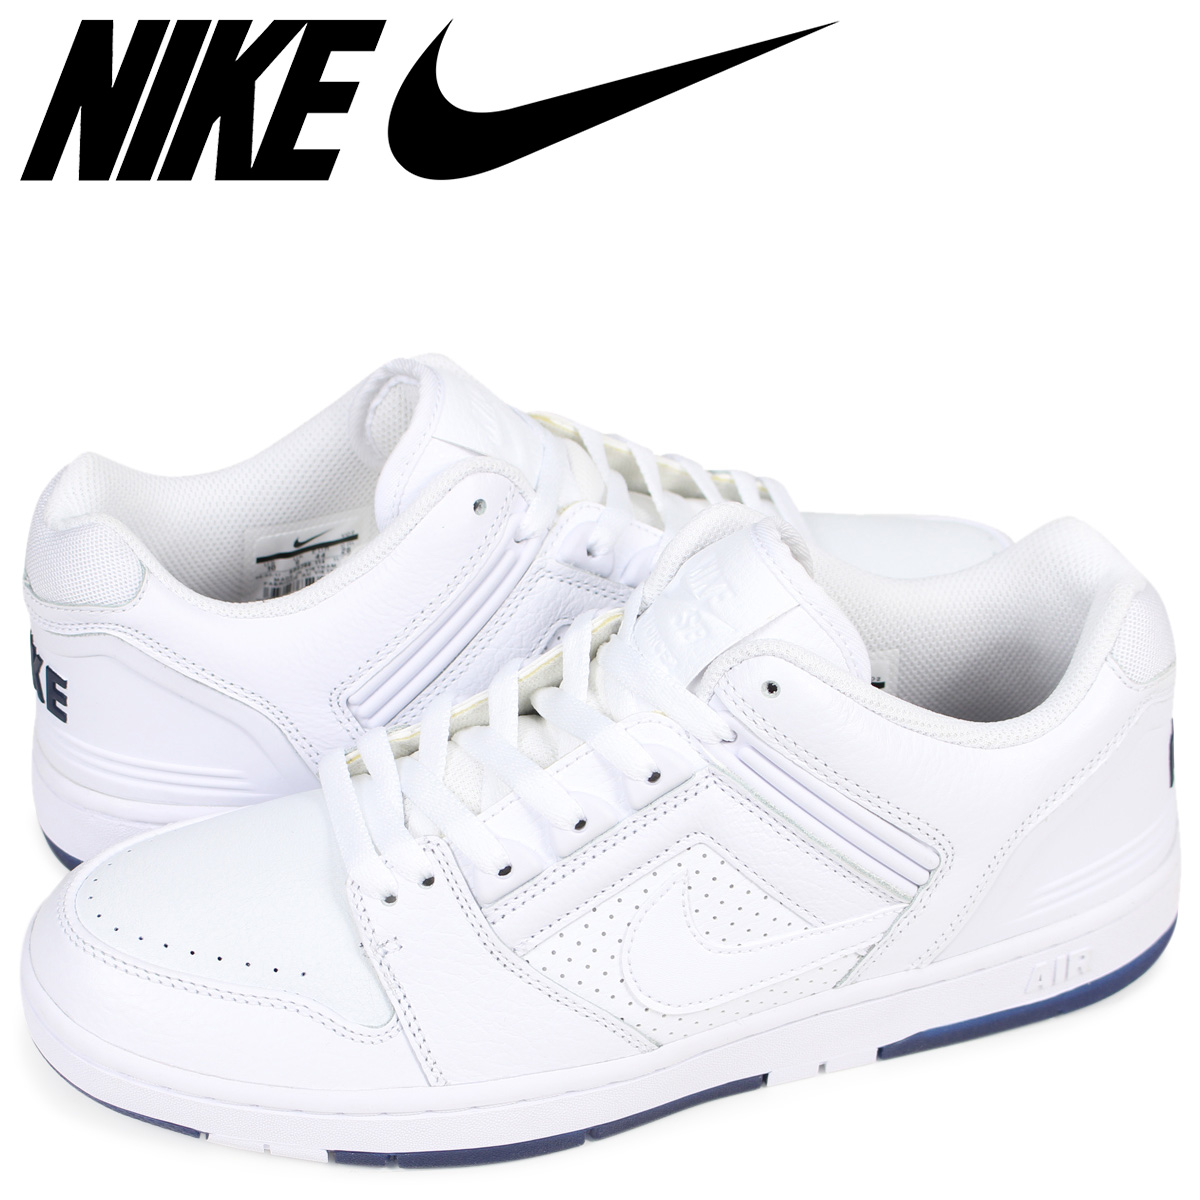 NIKE Nike air force 1 sneakers men gap Dis AIR FORCE 1 LOW 07 315,122 111 white white [220 reentry load]